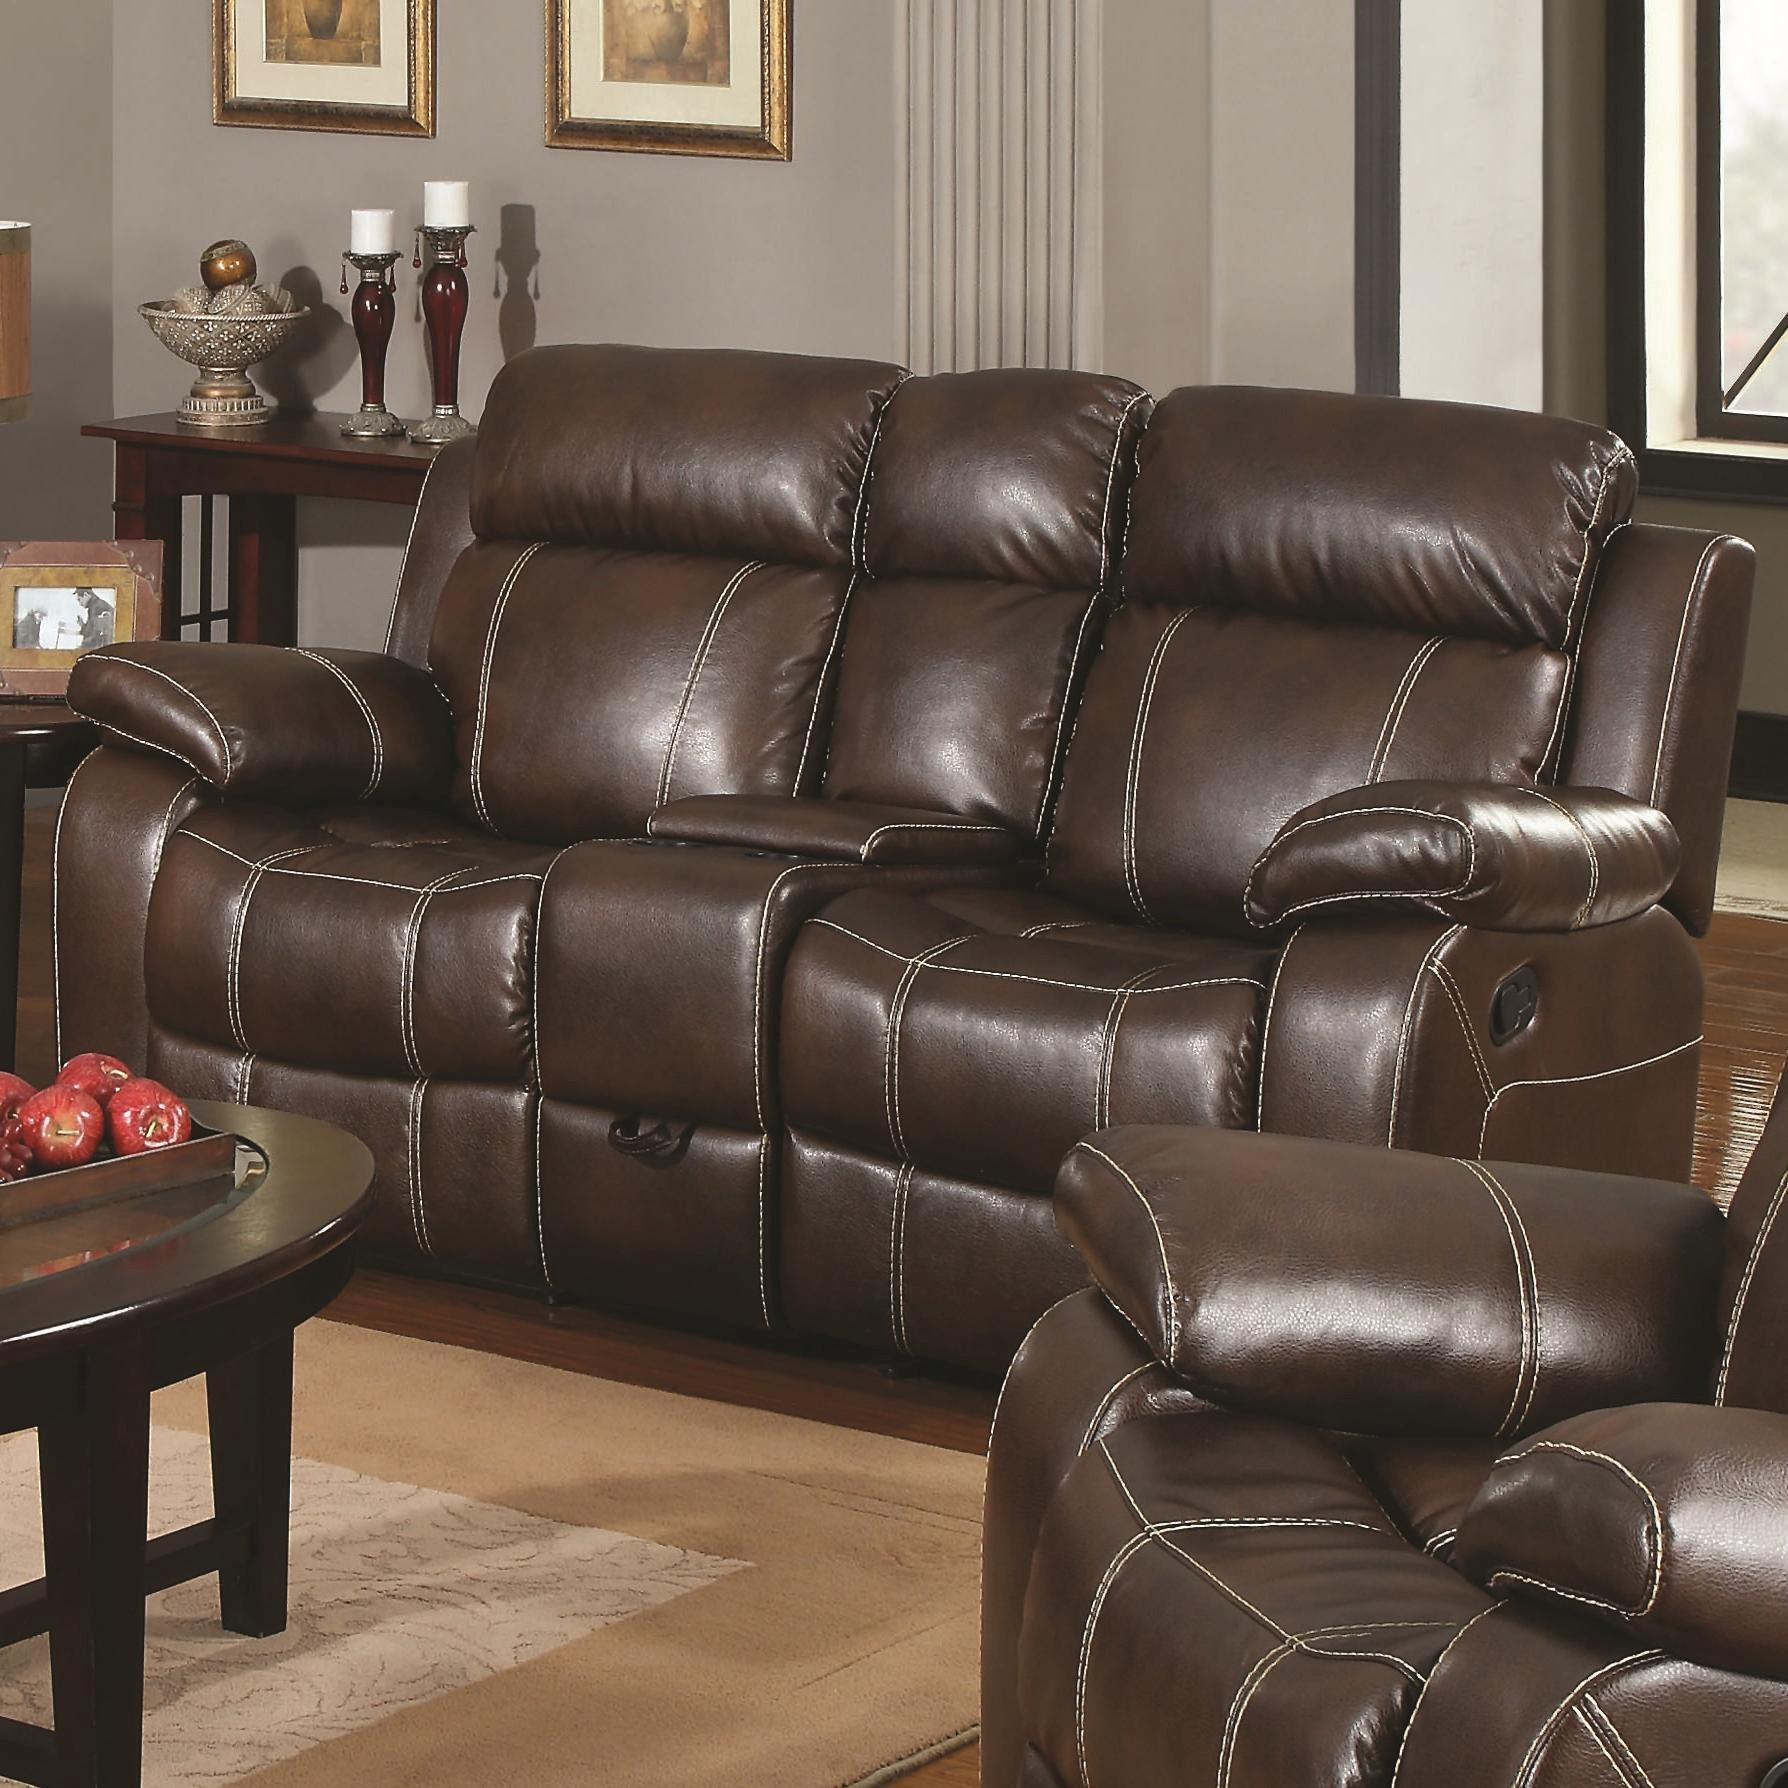 Reclining sofa and Loveseat Best Of Nice Reclining sofa Loveseat Fancy Reclining sofa Loveseat Concept